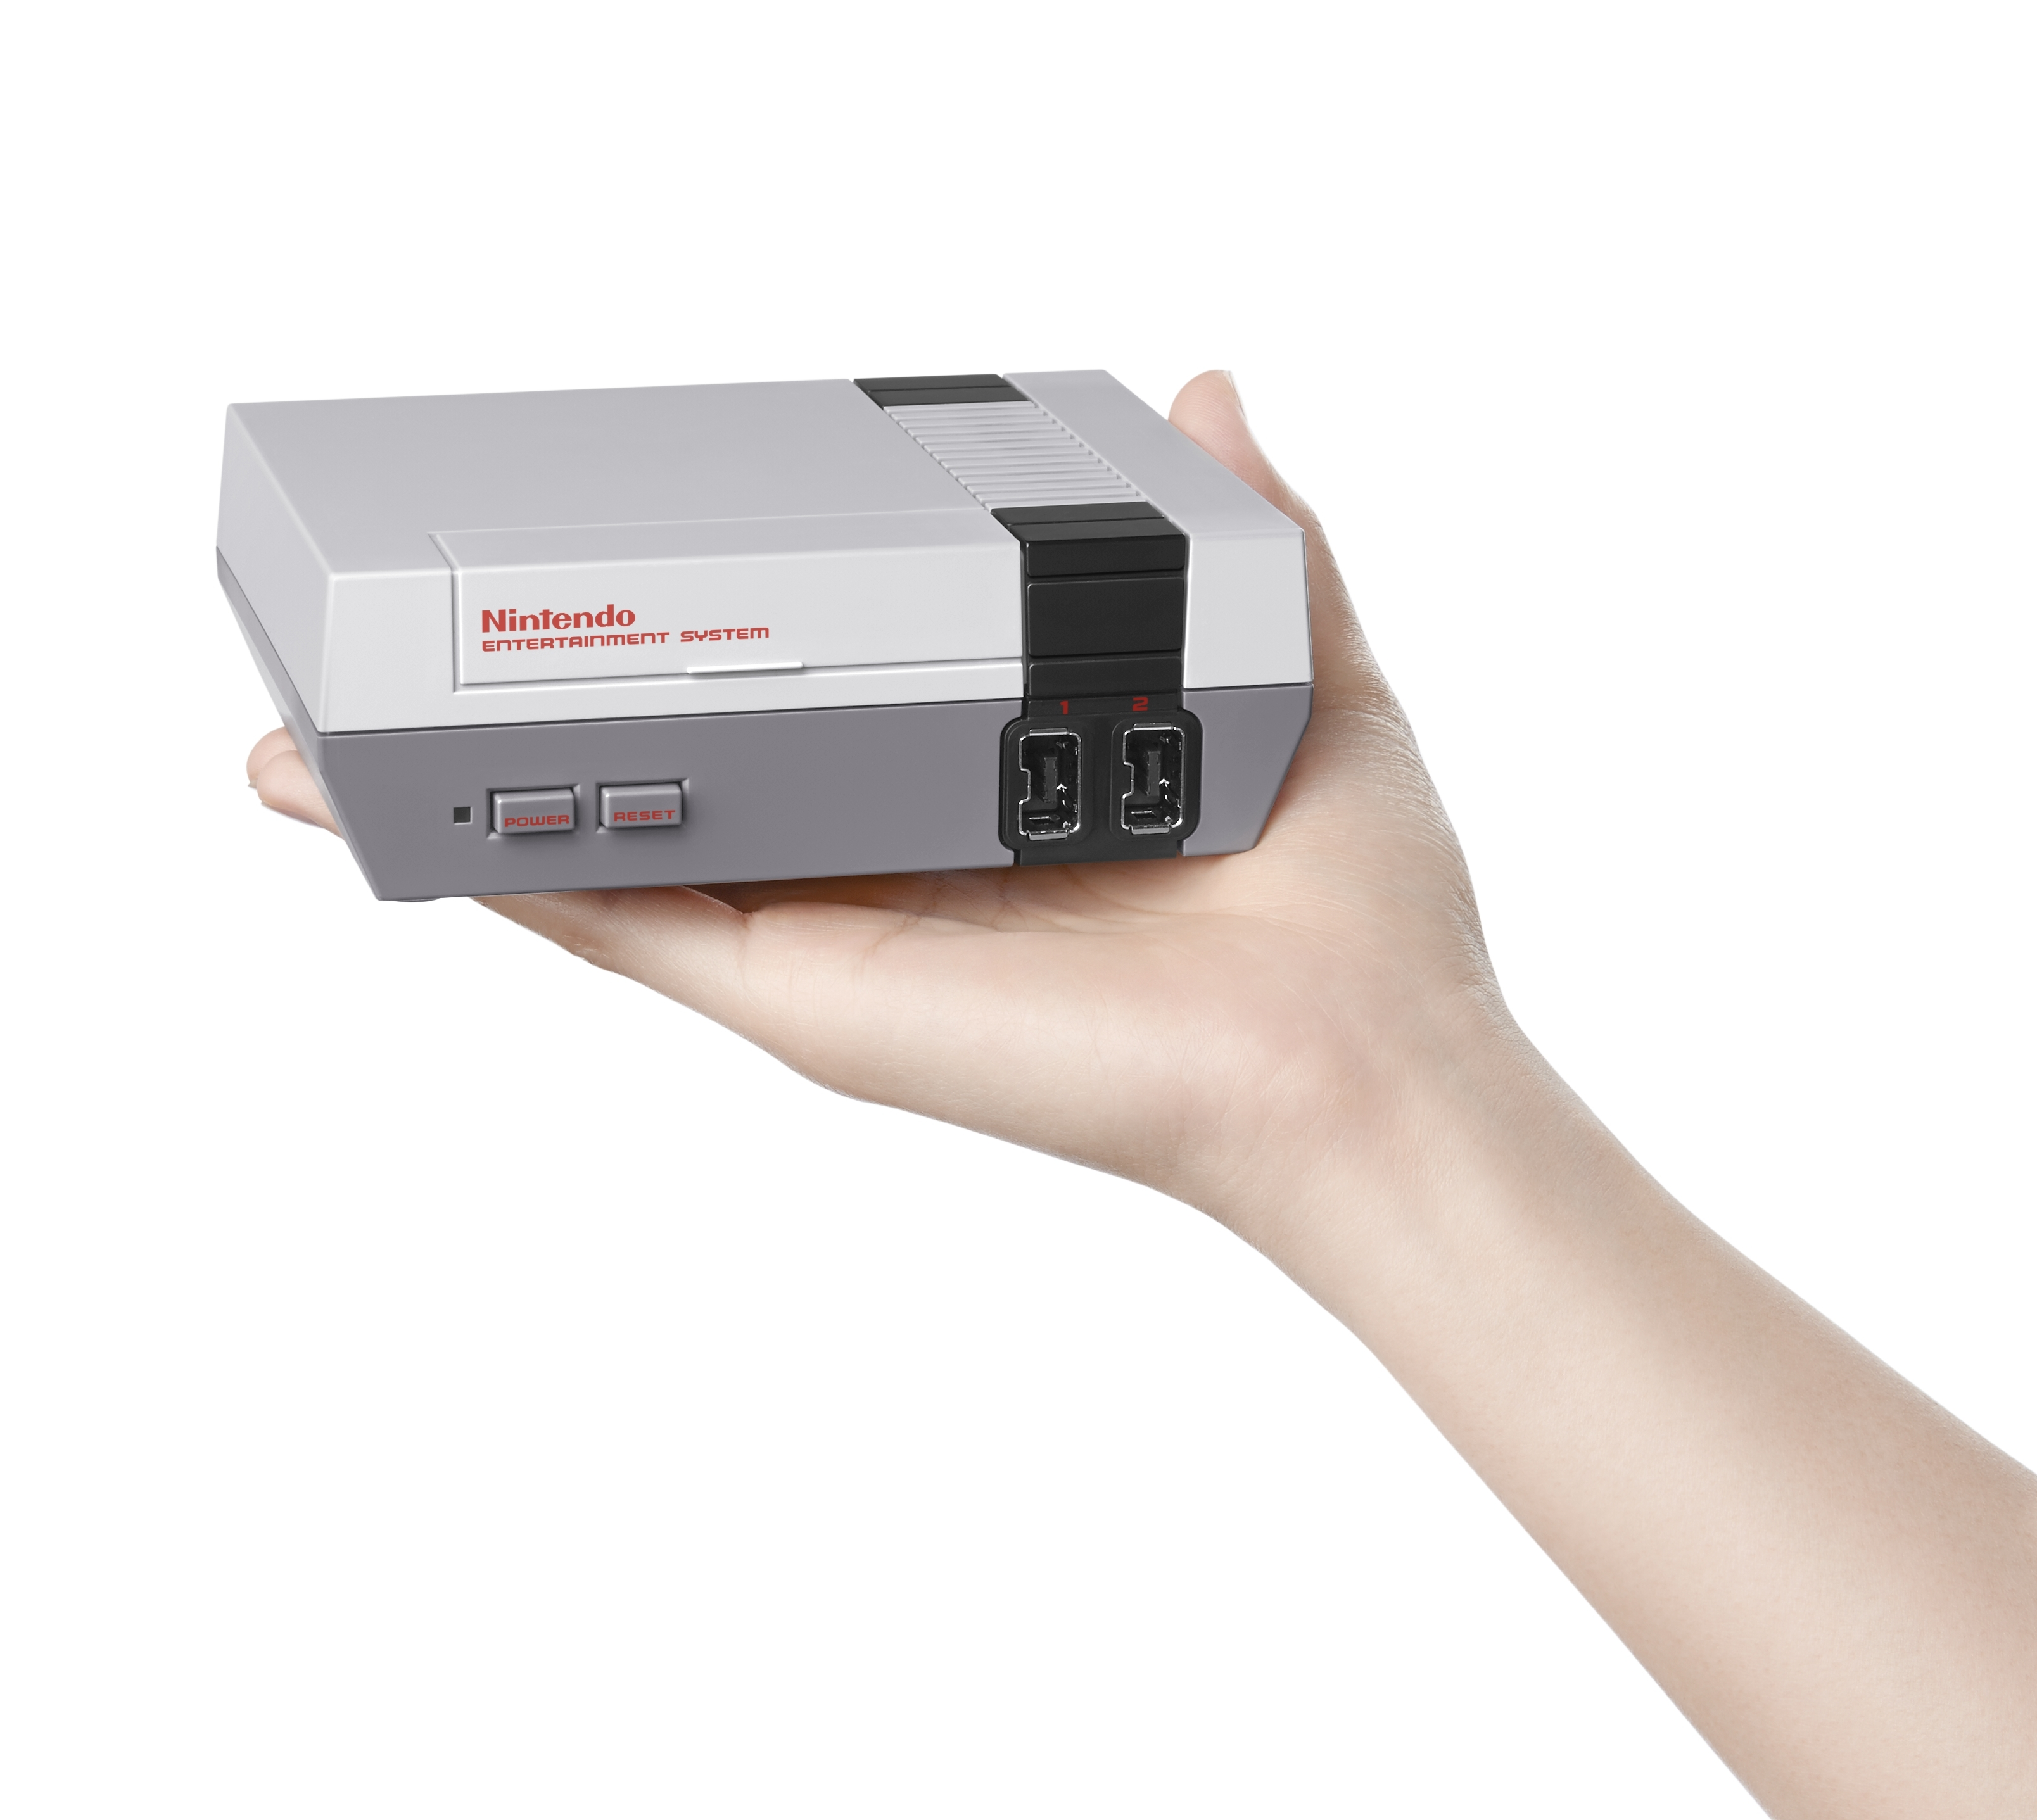 Nintendo Is Releasing a Miniature NES Classic Edition Console Loaded With 30 Games